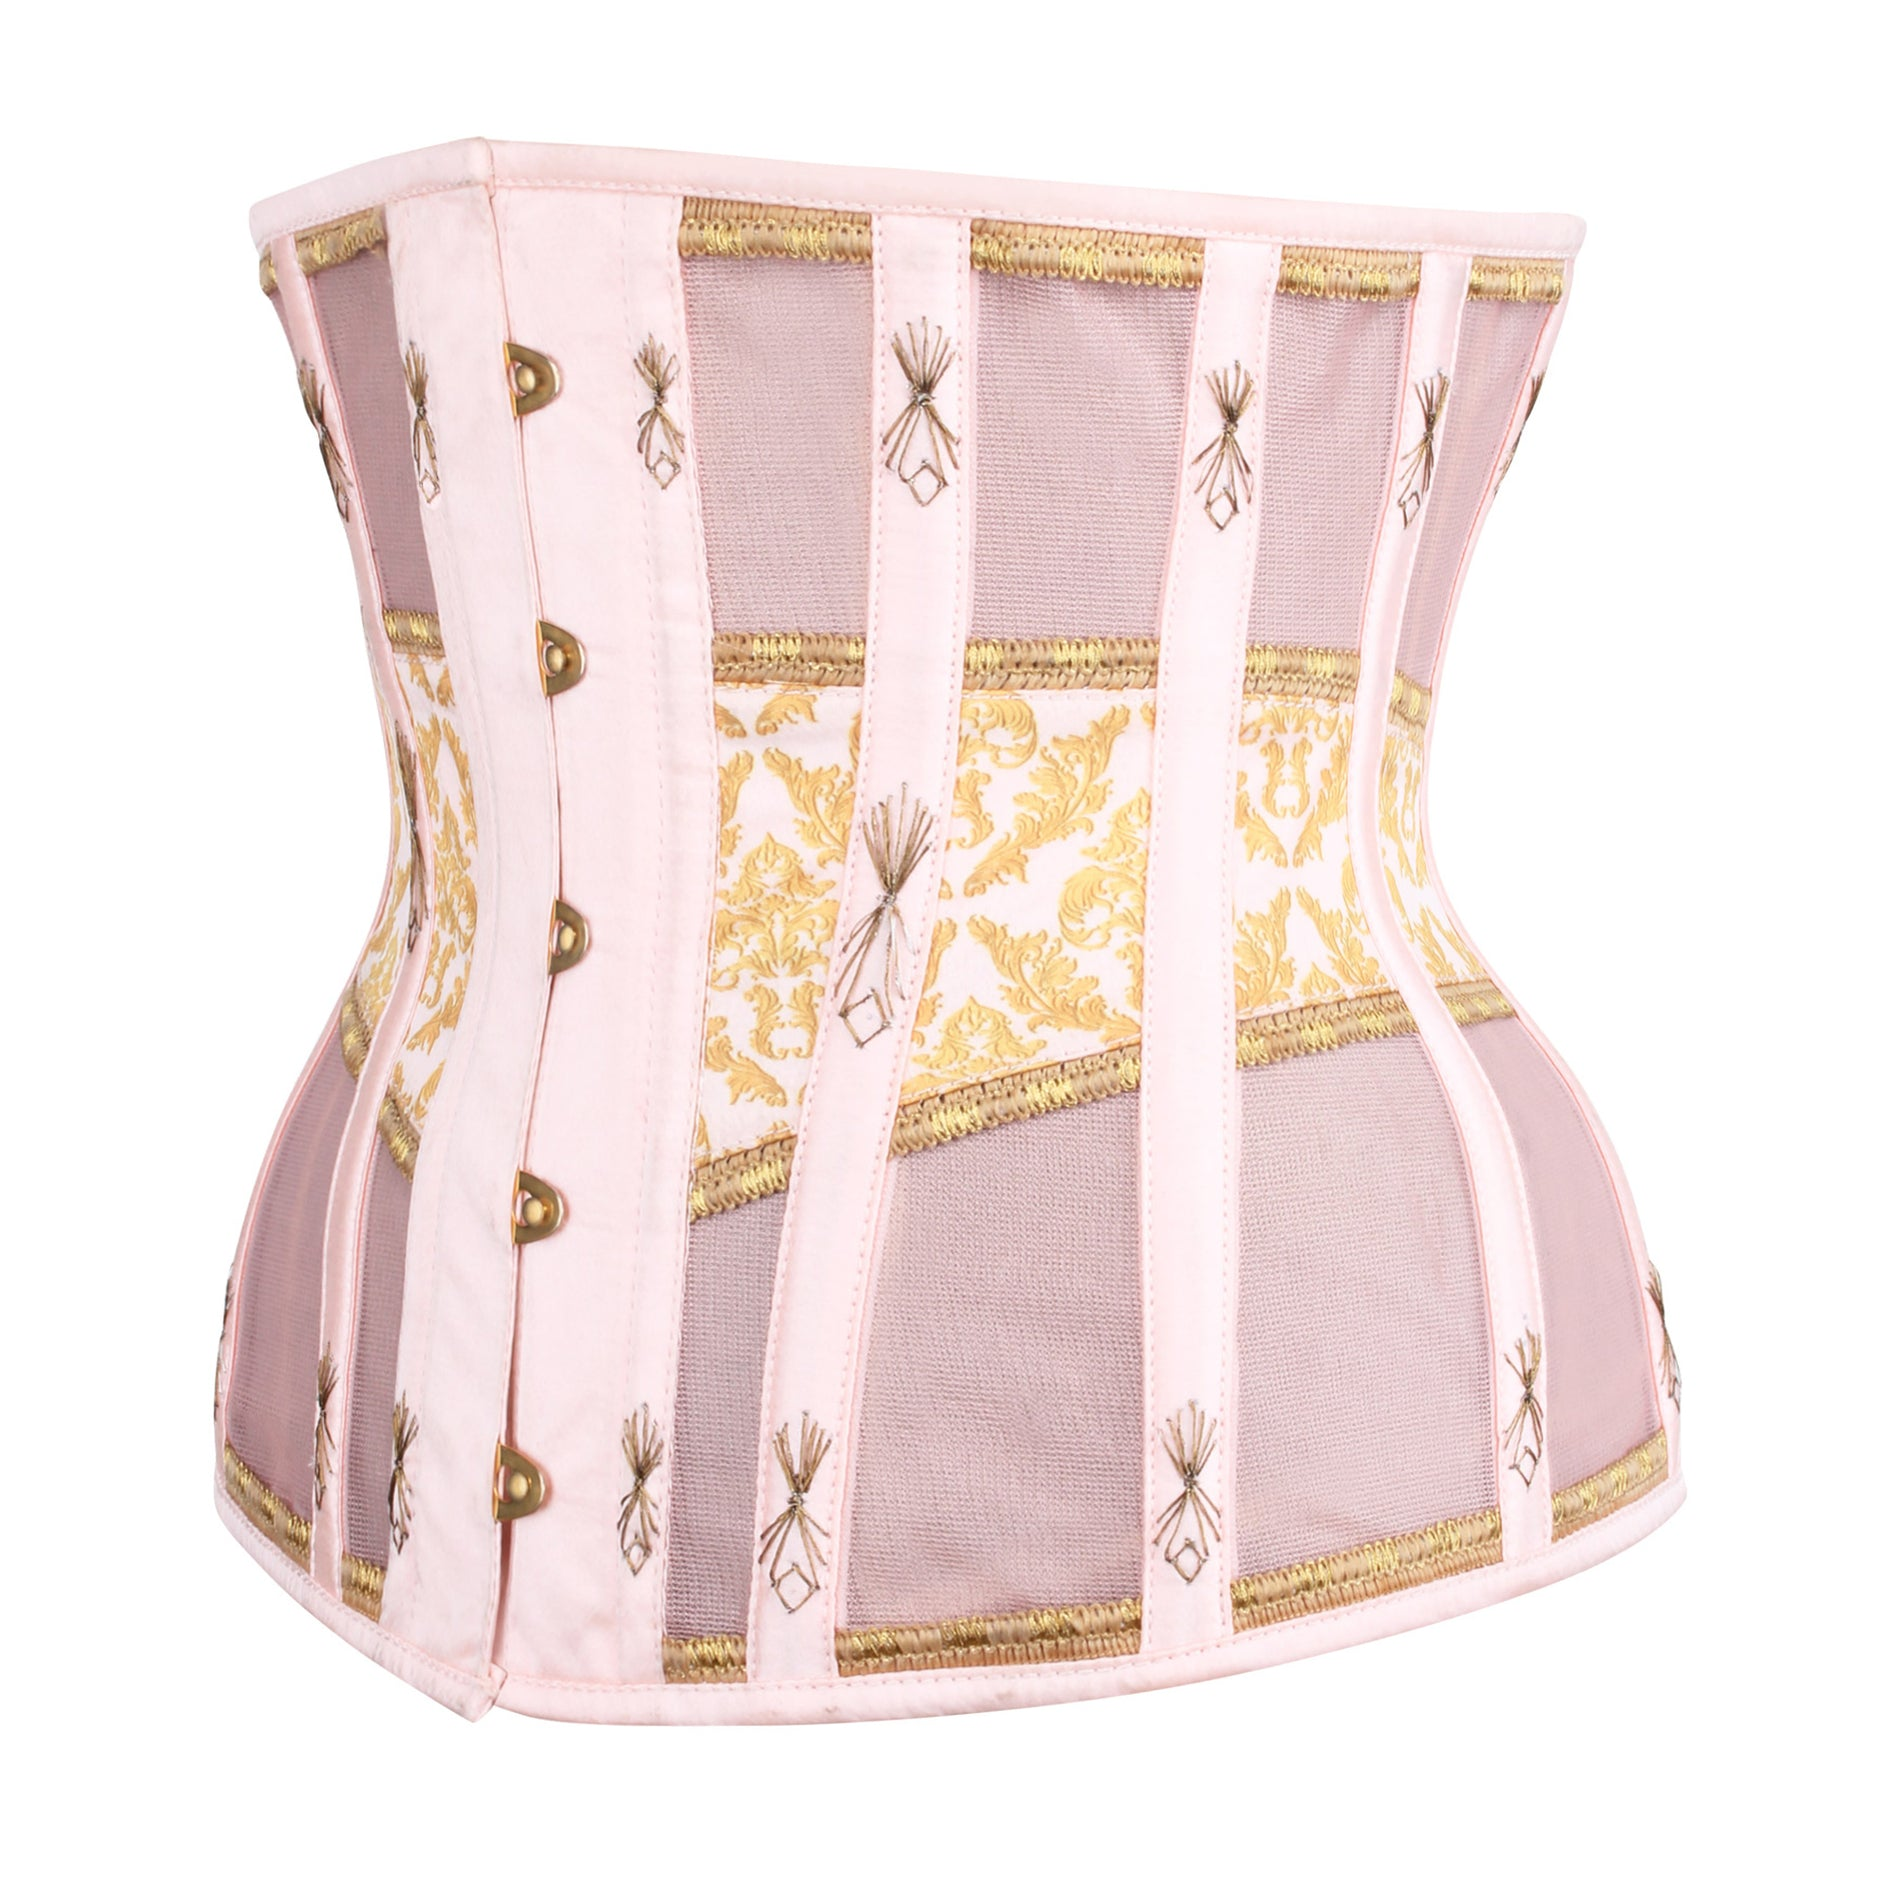 Quality Corsets: What Makes a Corset Authentic